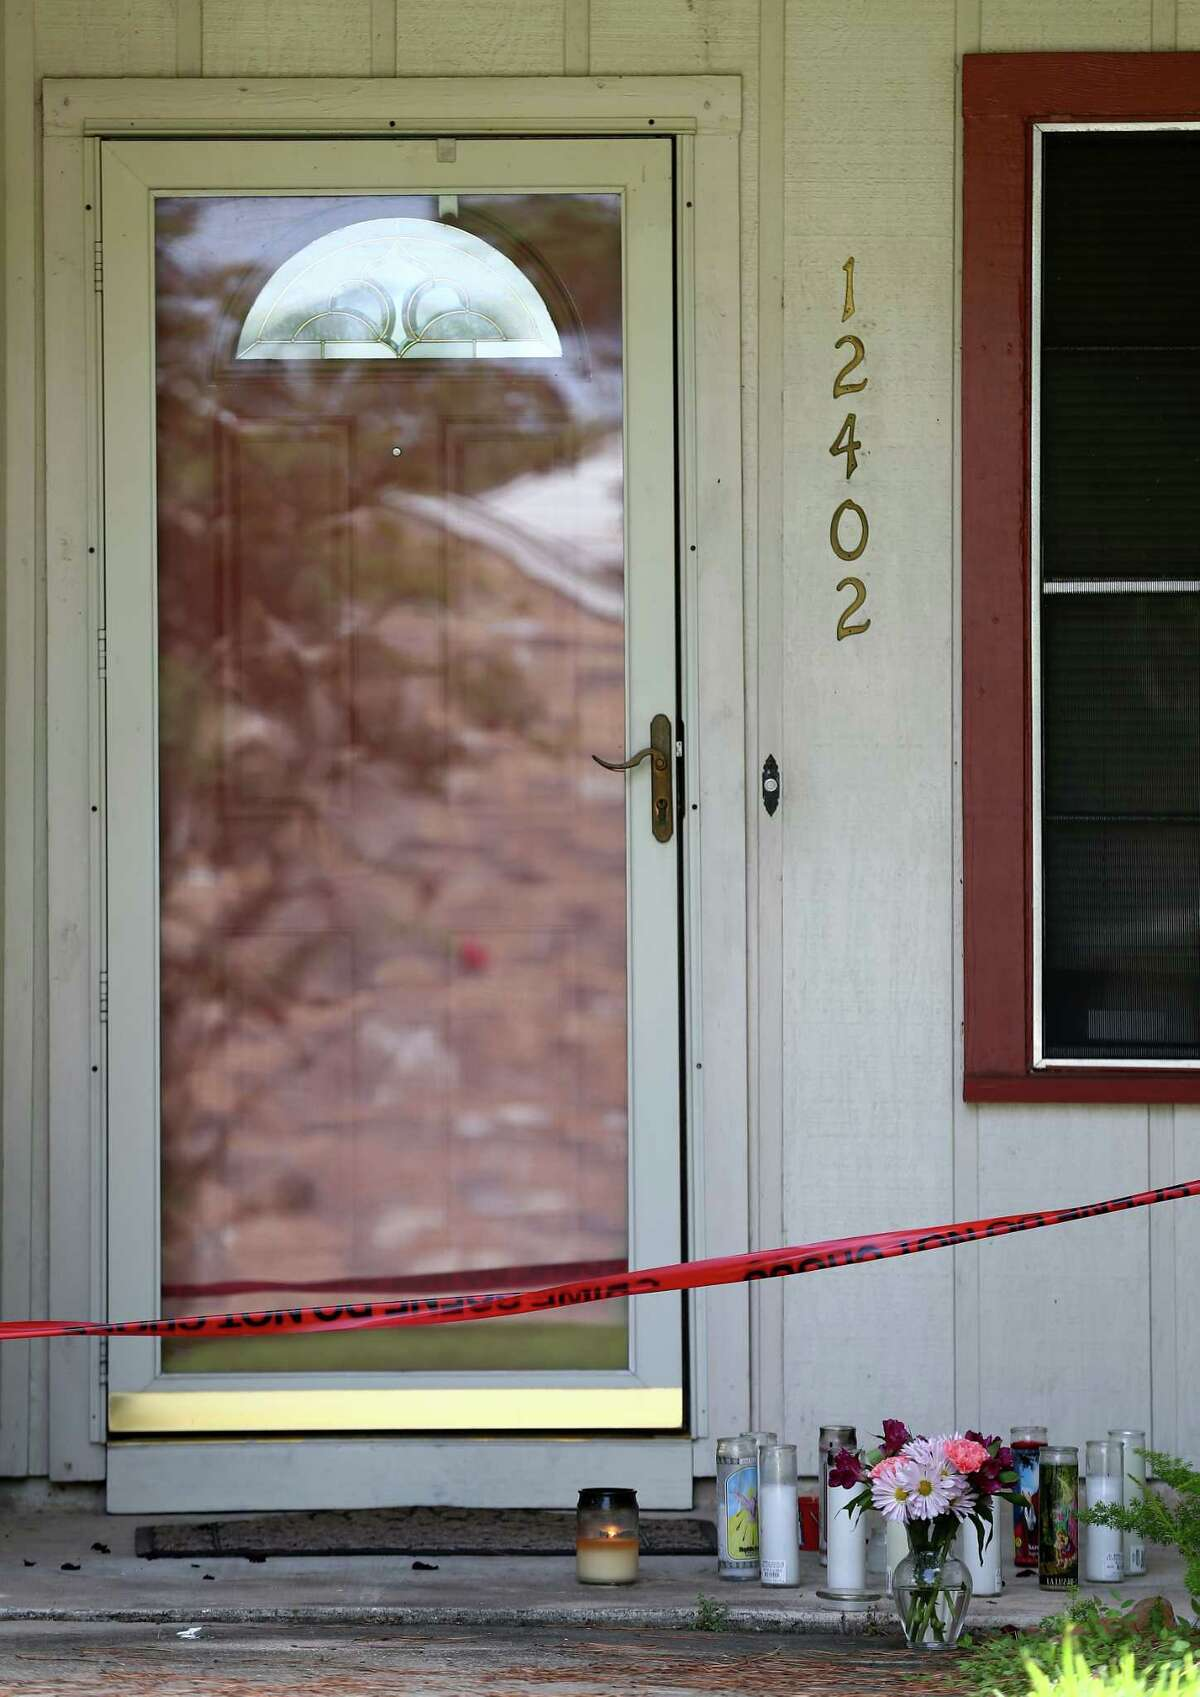 Pamela Johnson, was killed at her home in Cypress, shown here. Rodriguez is also charged in her death.